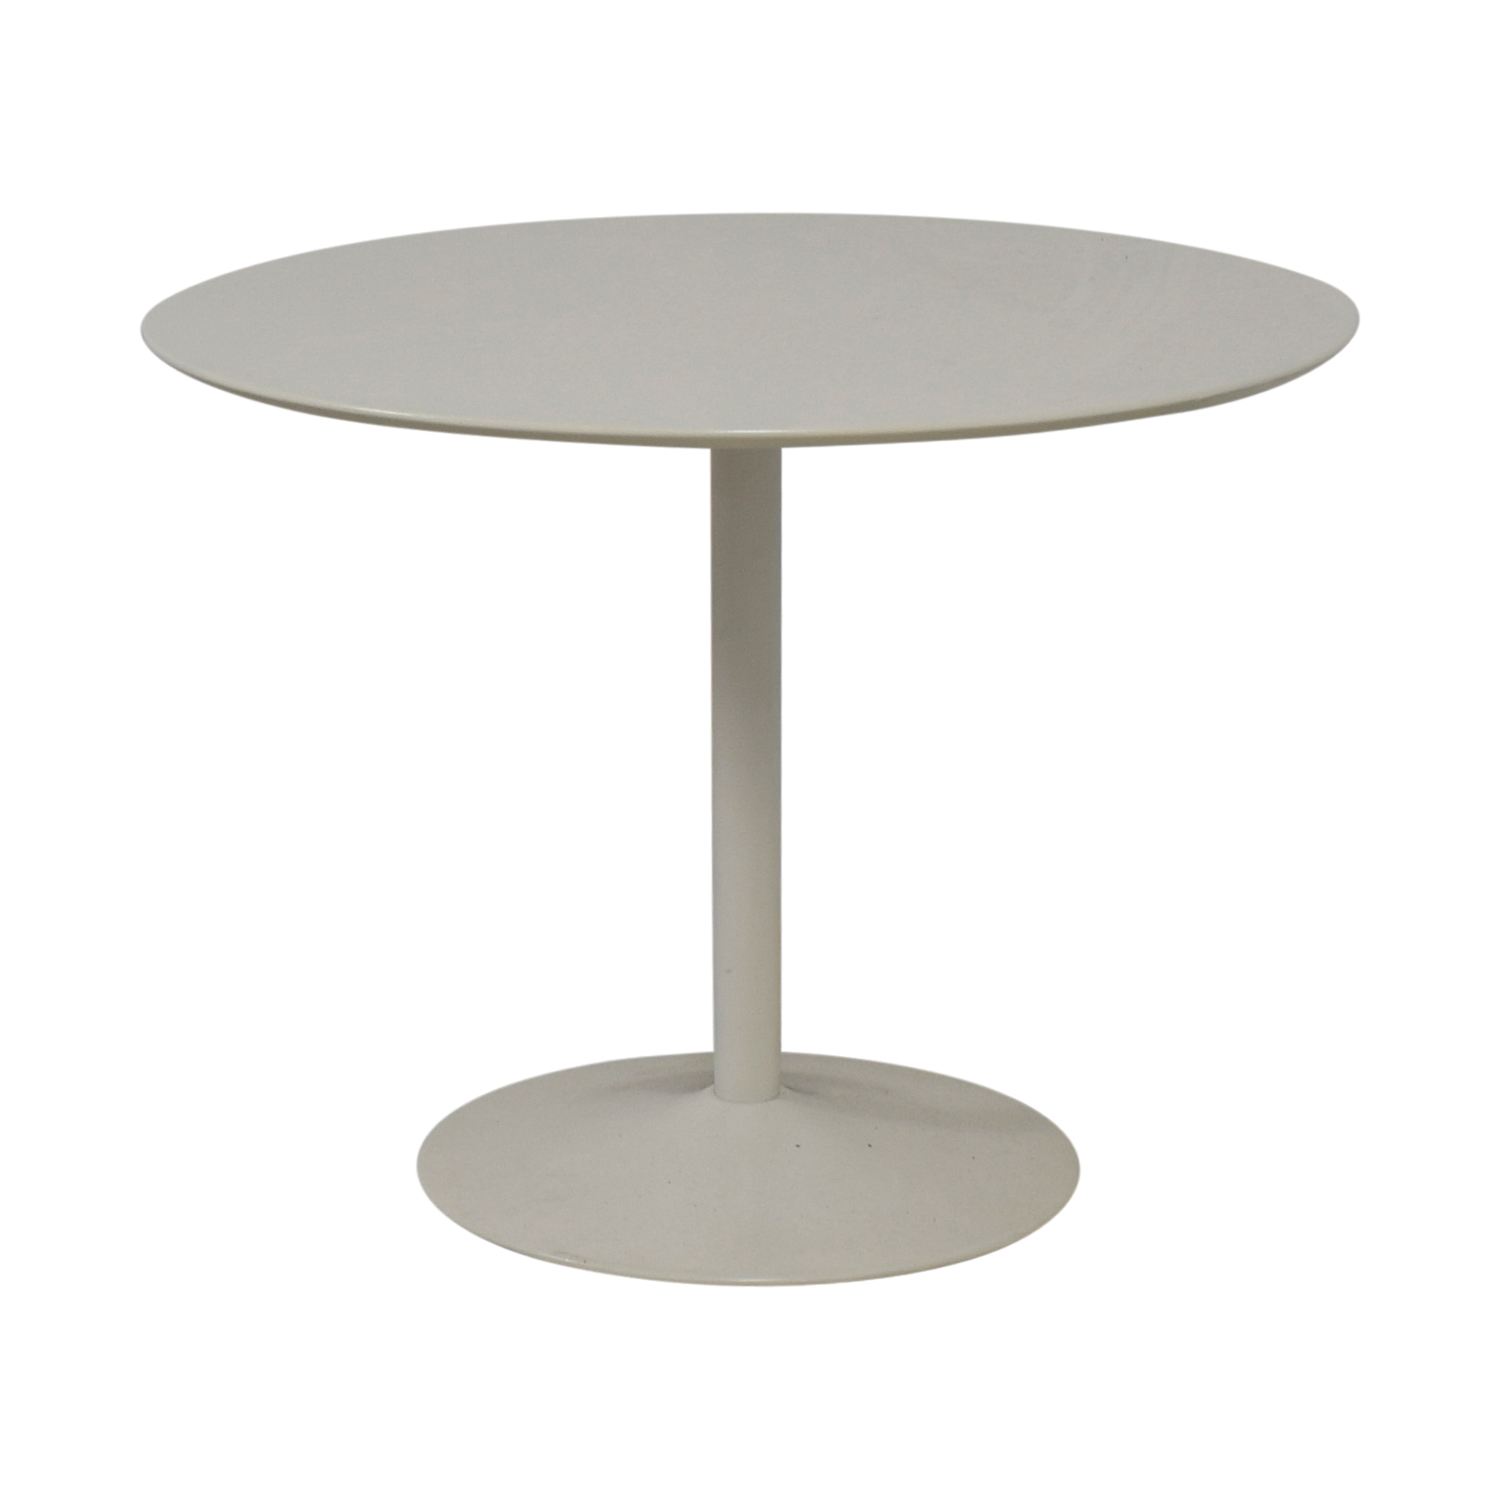 CB2 Odyssey White Tulip Dining Table / Tables